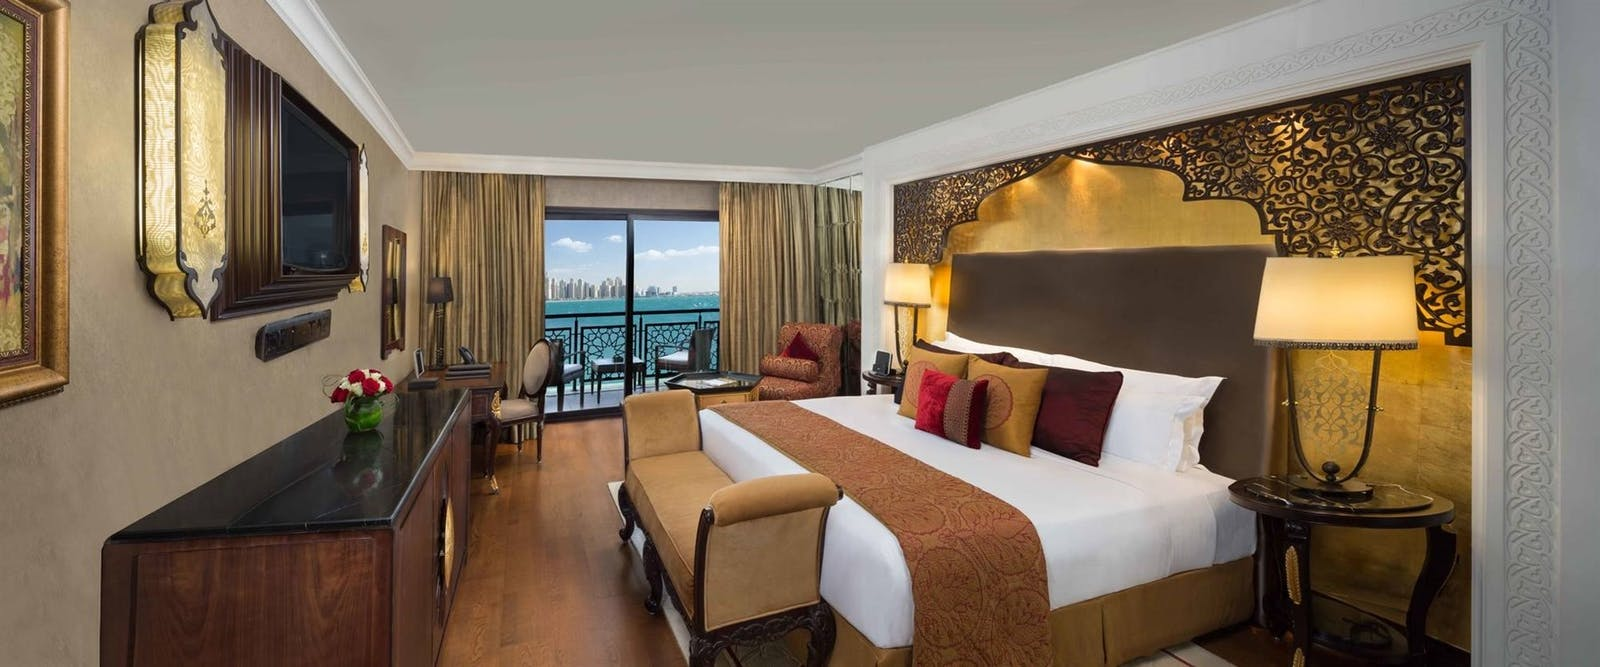 Deluxe king arabian sea view at Jumeirah Zabeel Saray, Dubai